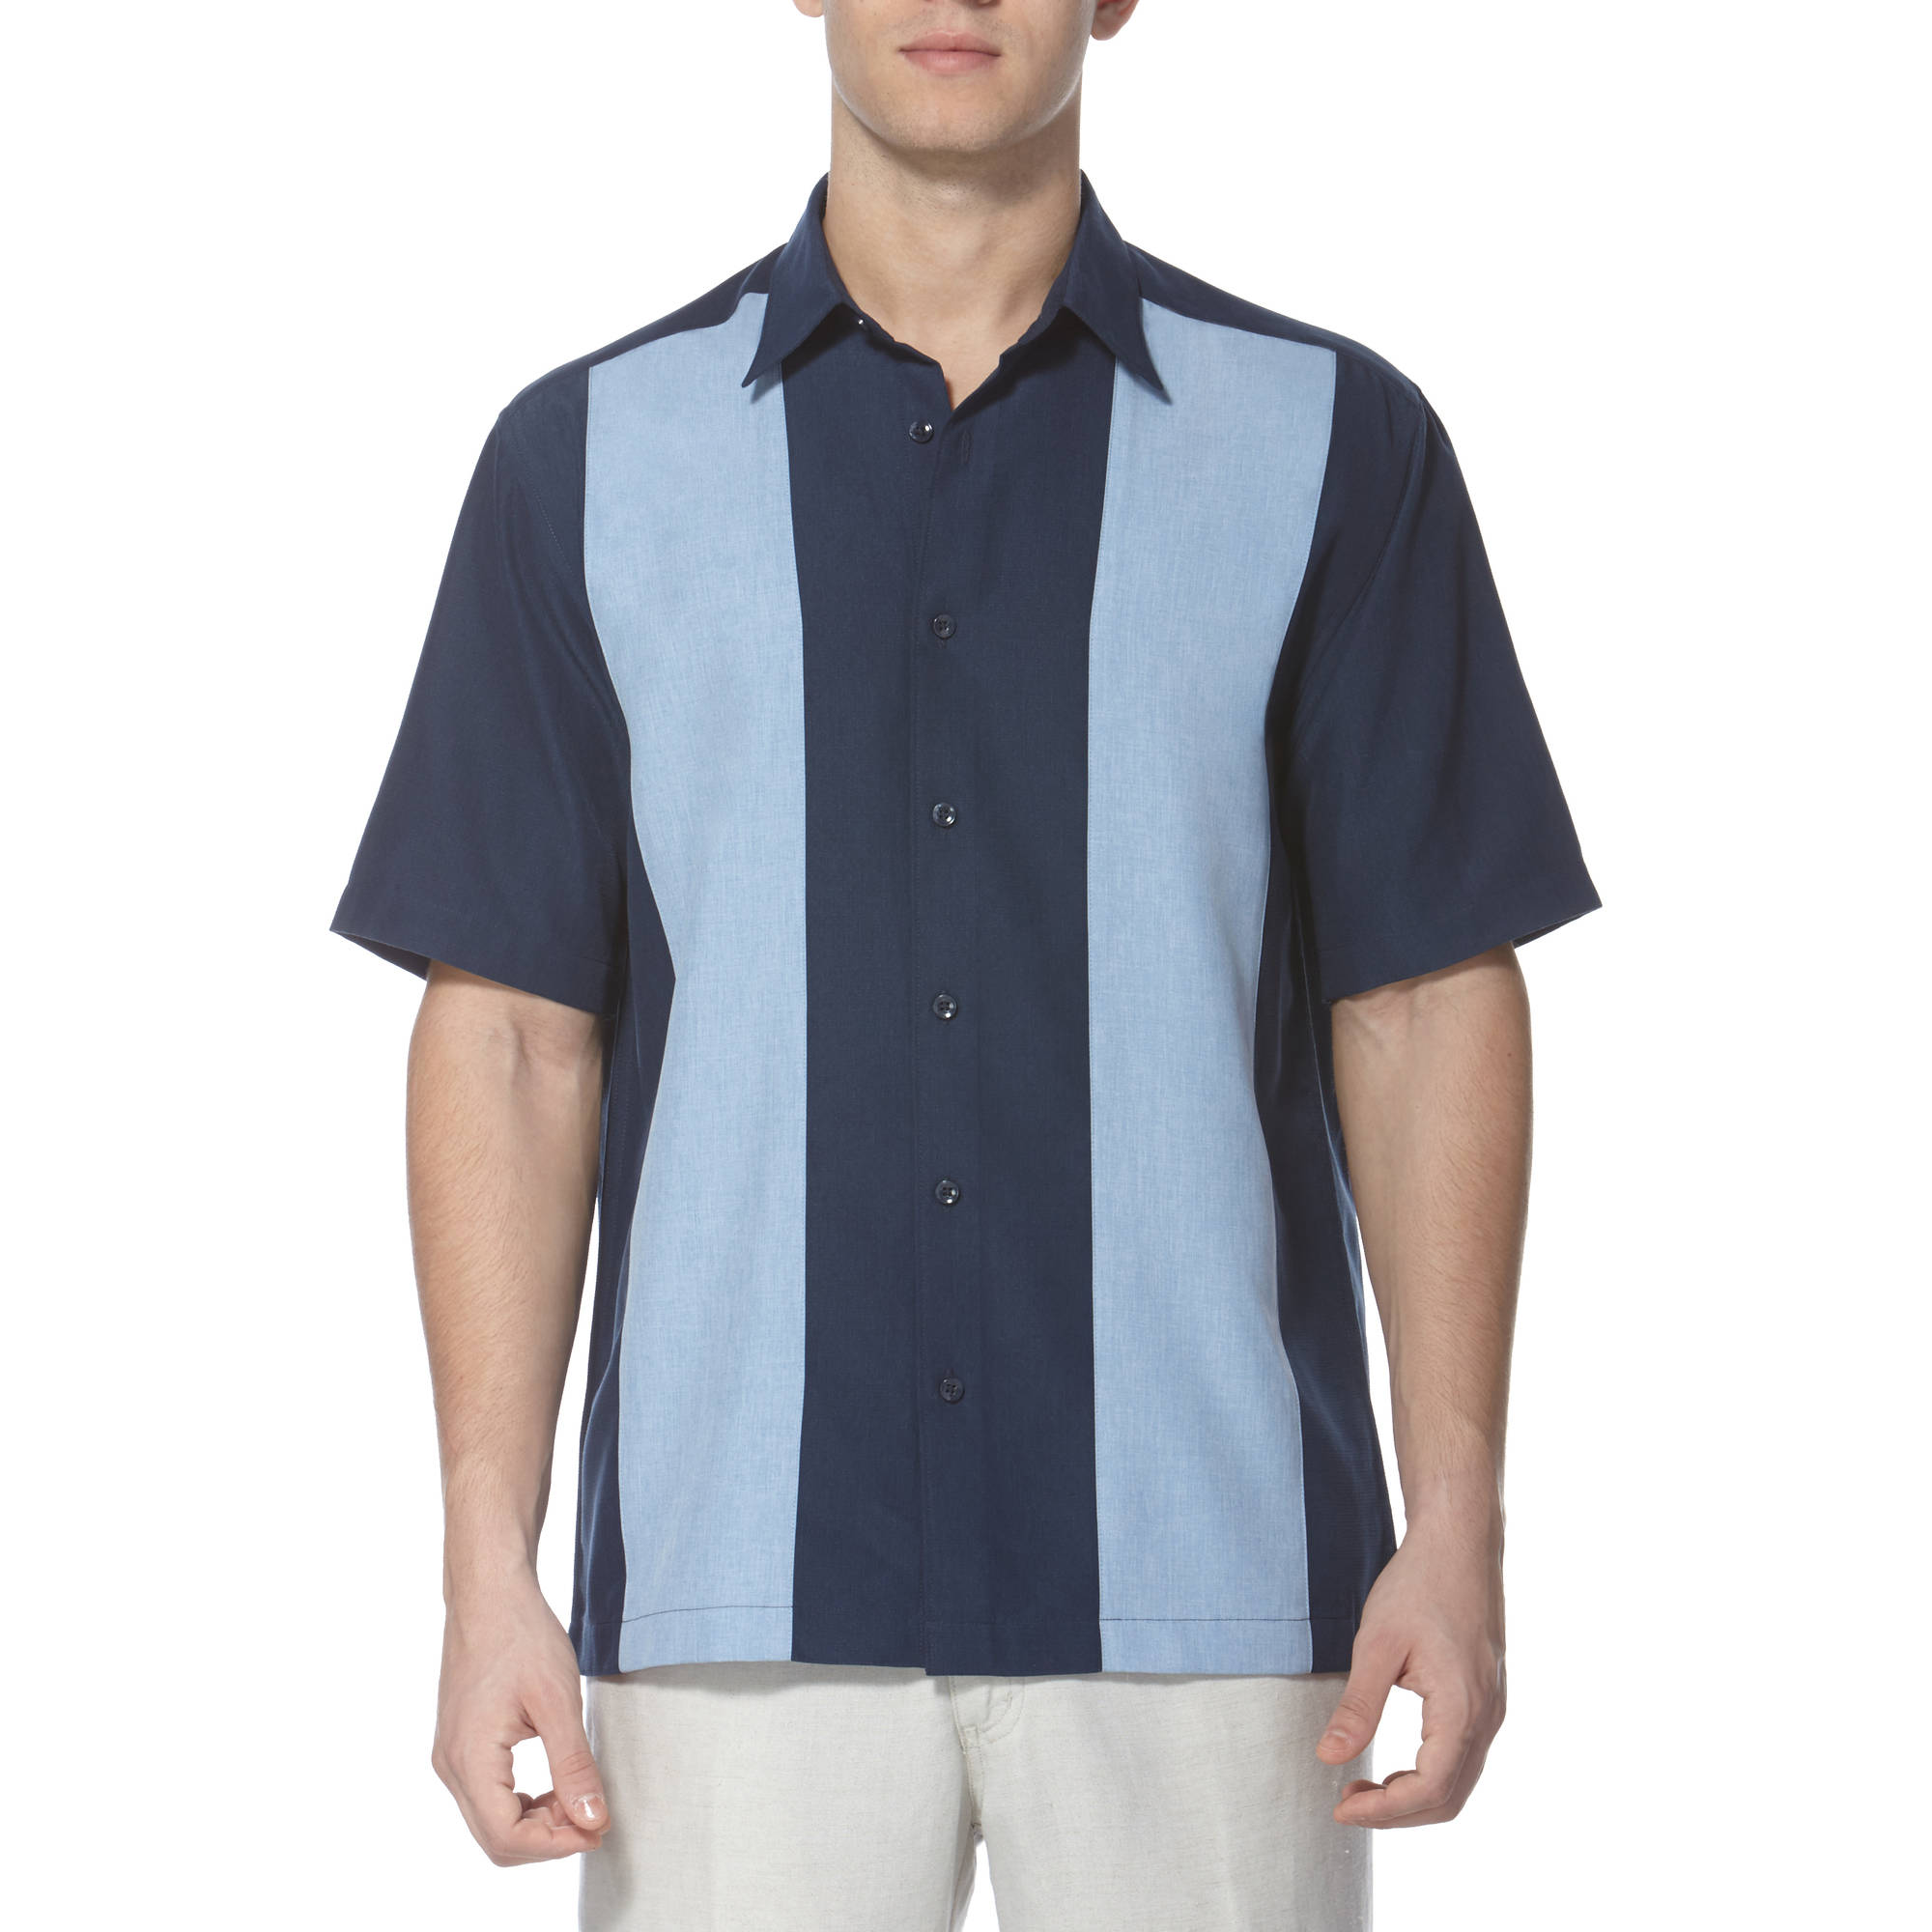 Caf Luna Men's Contrast Panel Woven Shirt